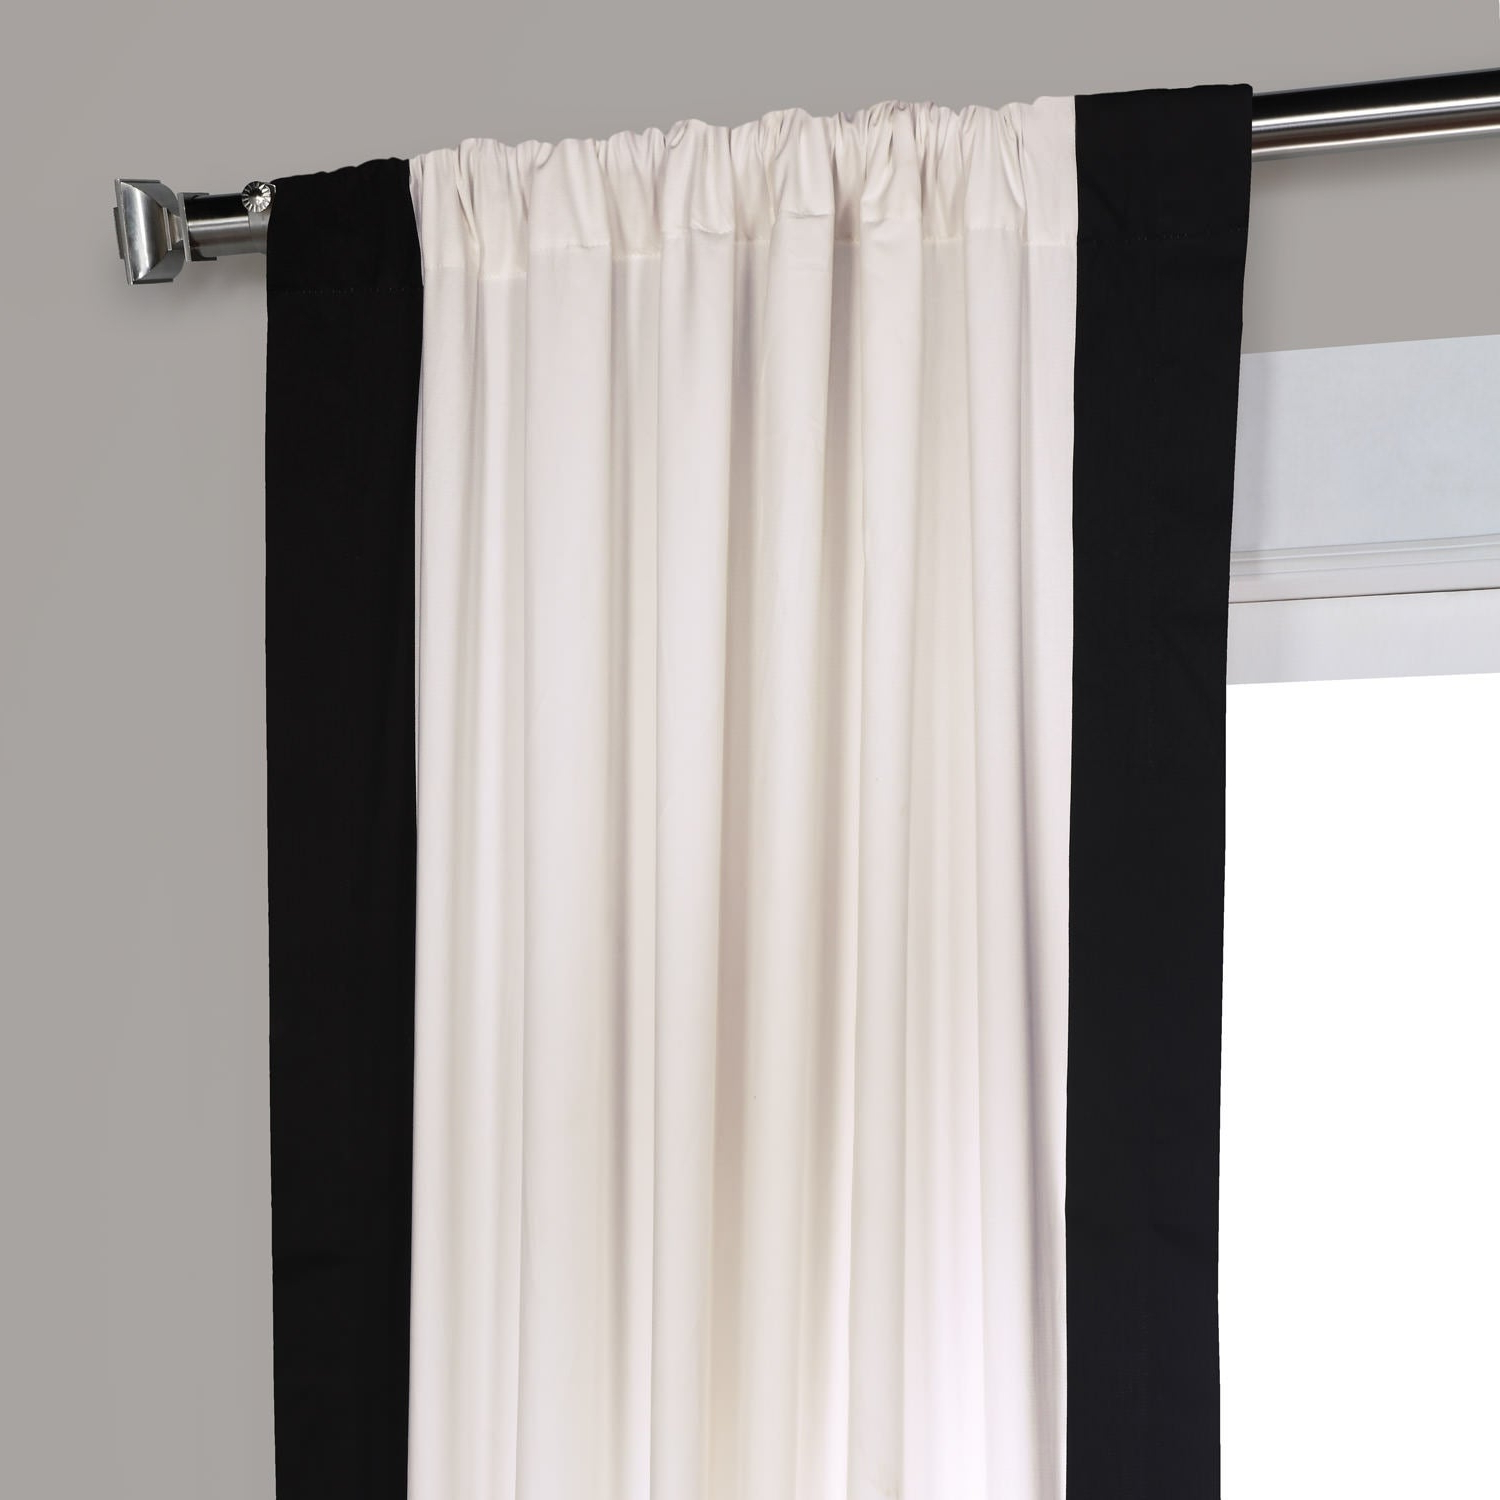 Widely Used Exclusive Fabrics Vertical Colorblock Panama Curtain Pertaining To Vertical Colorblock Panama Curtains (View 2 of 20)